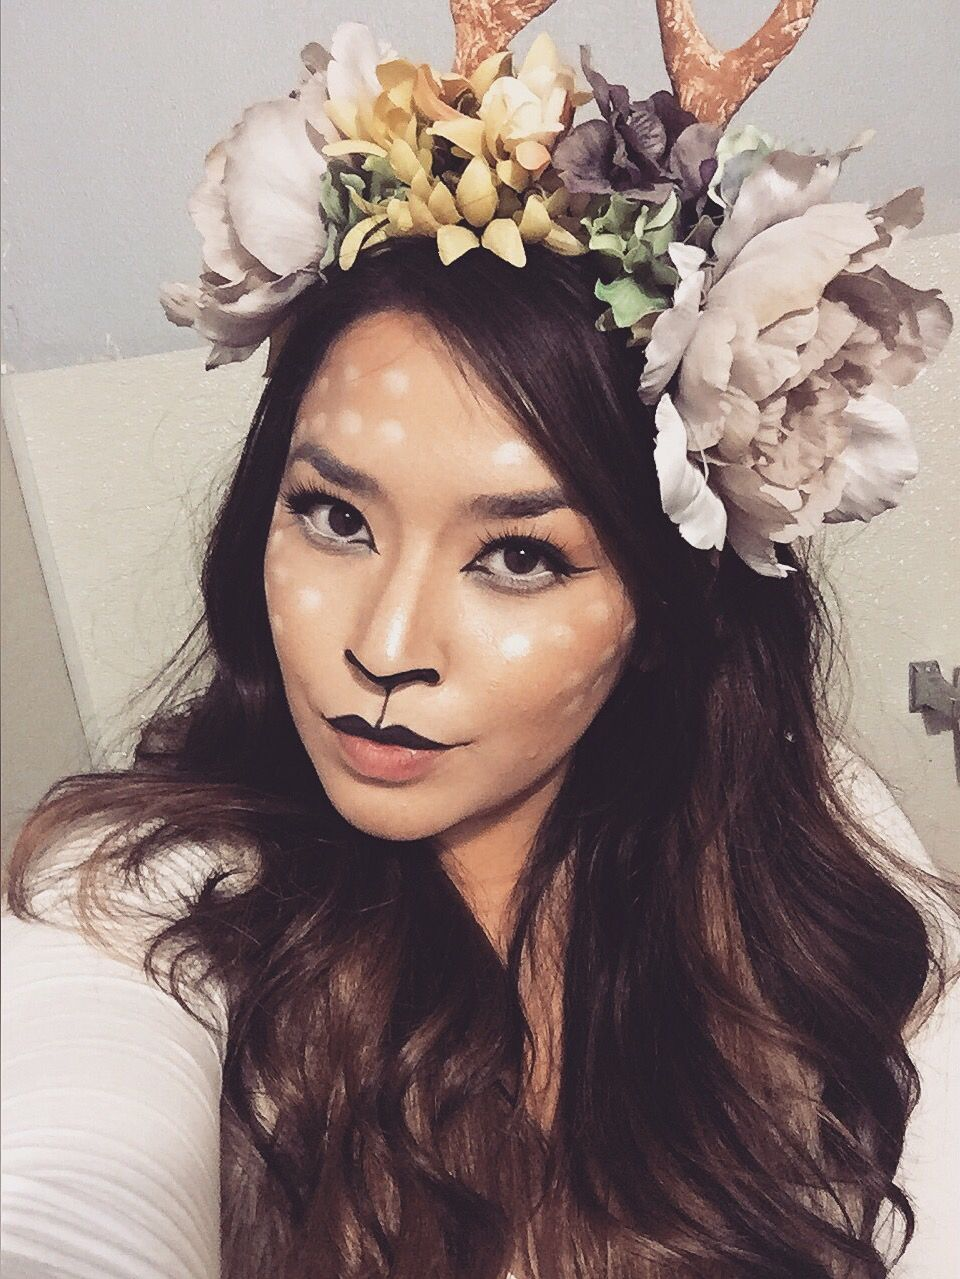 deer make up and flower crown with antlers for halloween